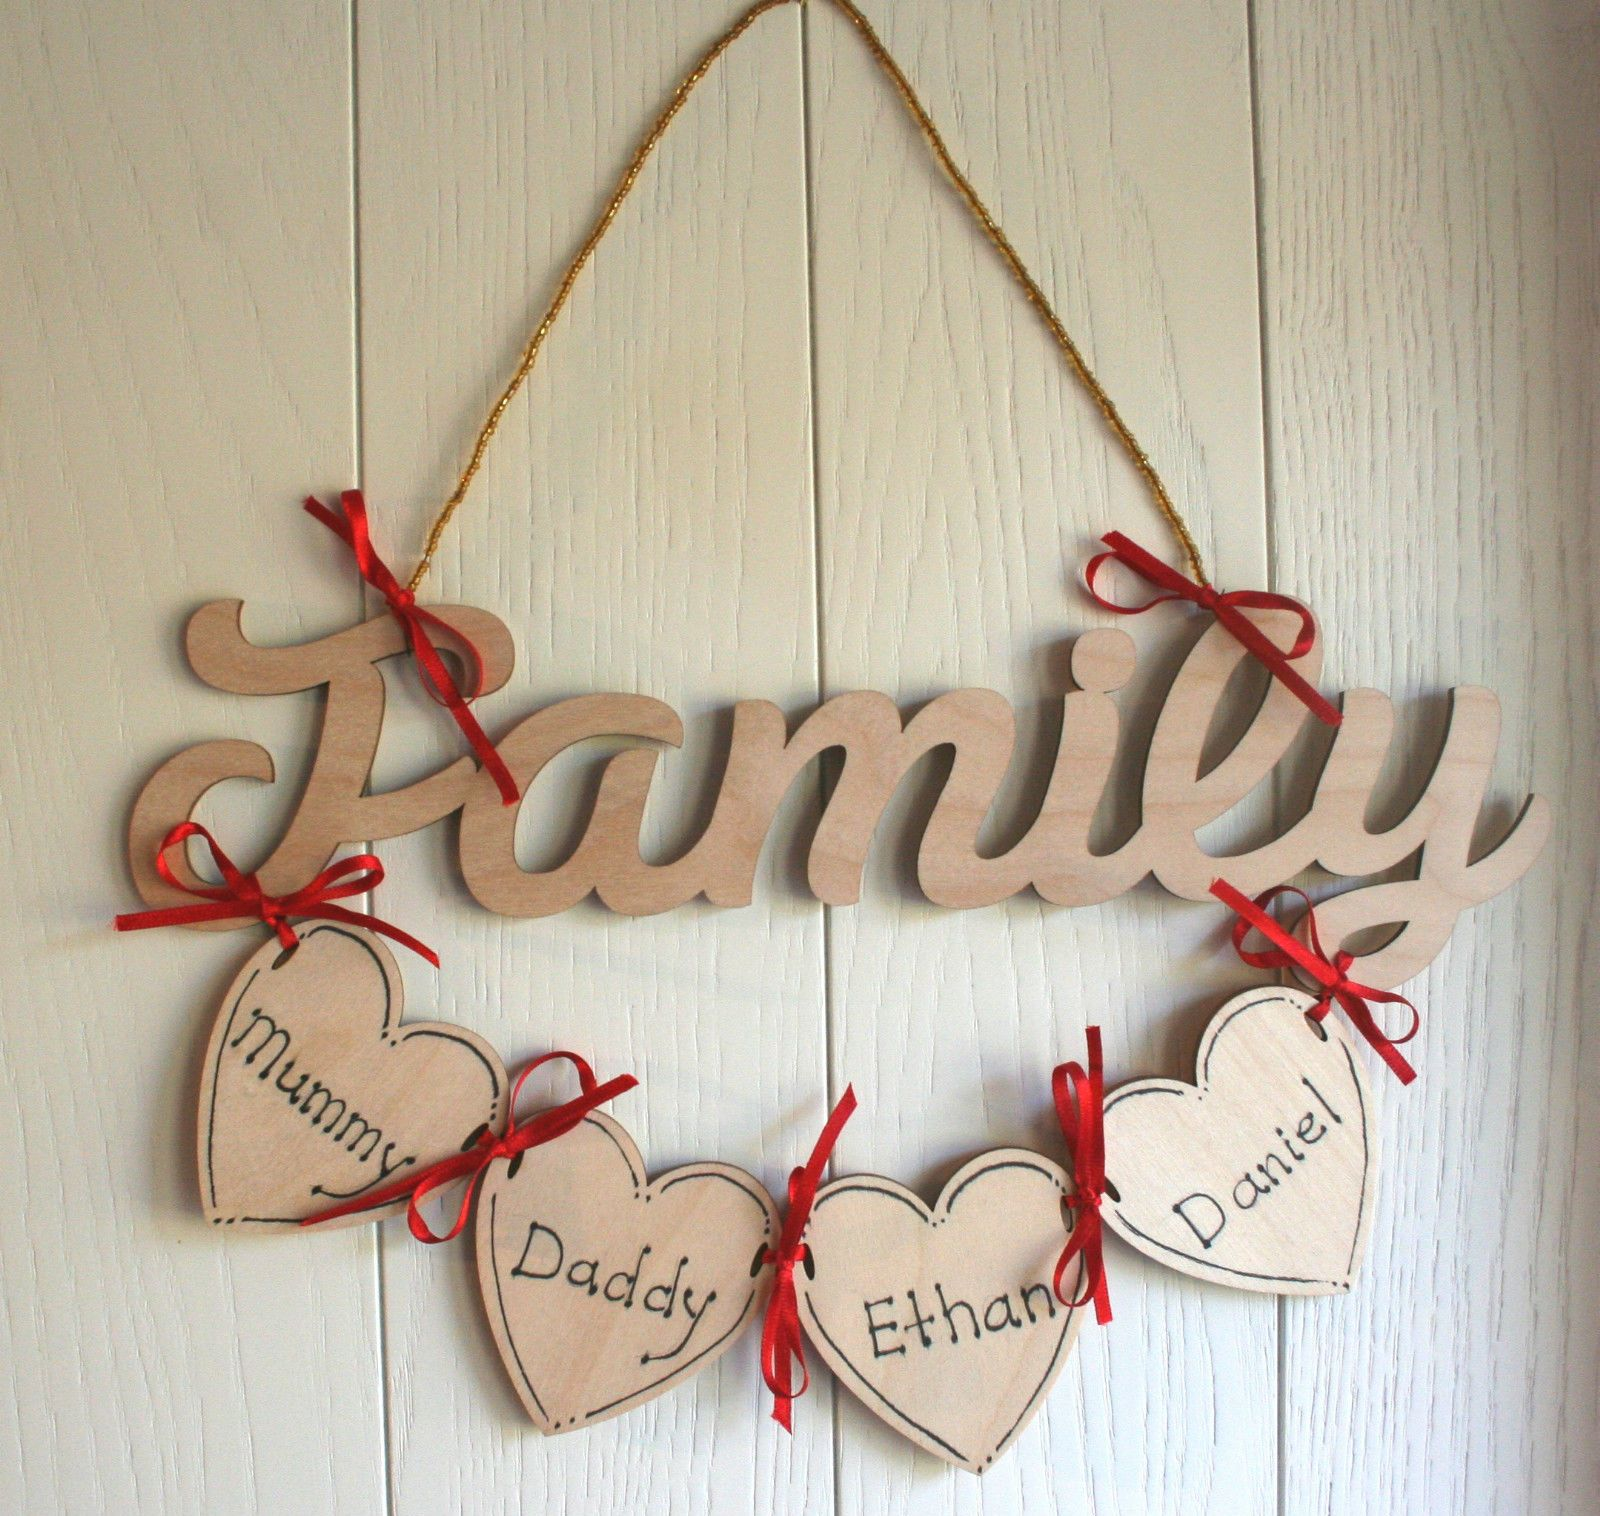 Wooden Plaque With Personalised Wooden Hearts Lovely Family Gift Or A Gift For Someone Else Personalised Wooden Gifts Wooden Hearts Christmas Crafts For Gifts